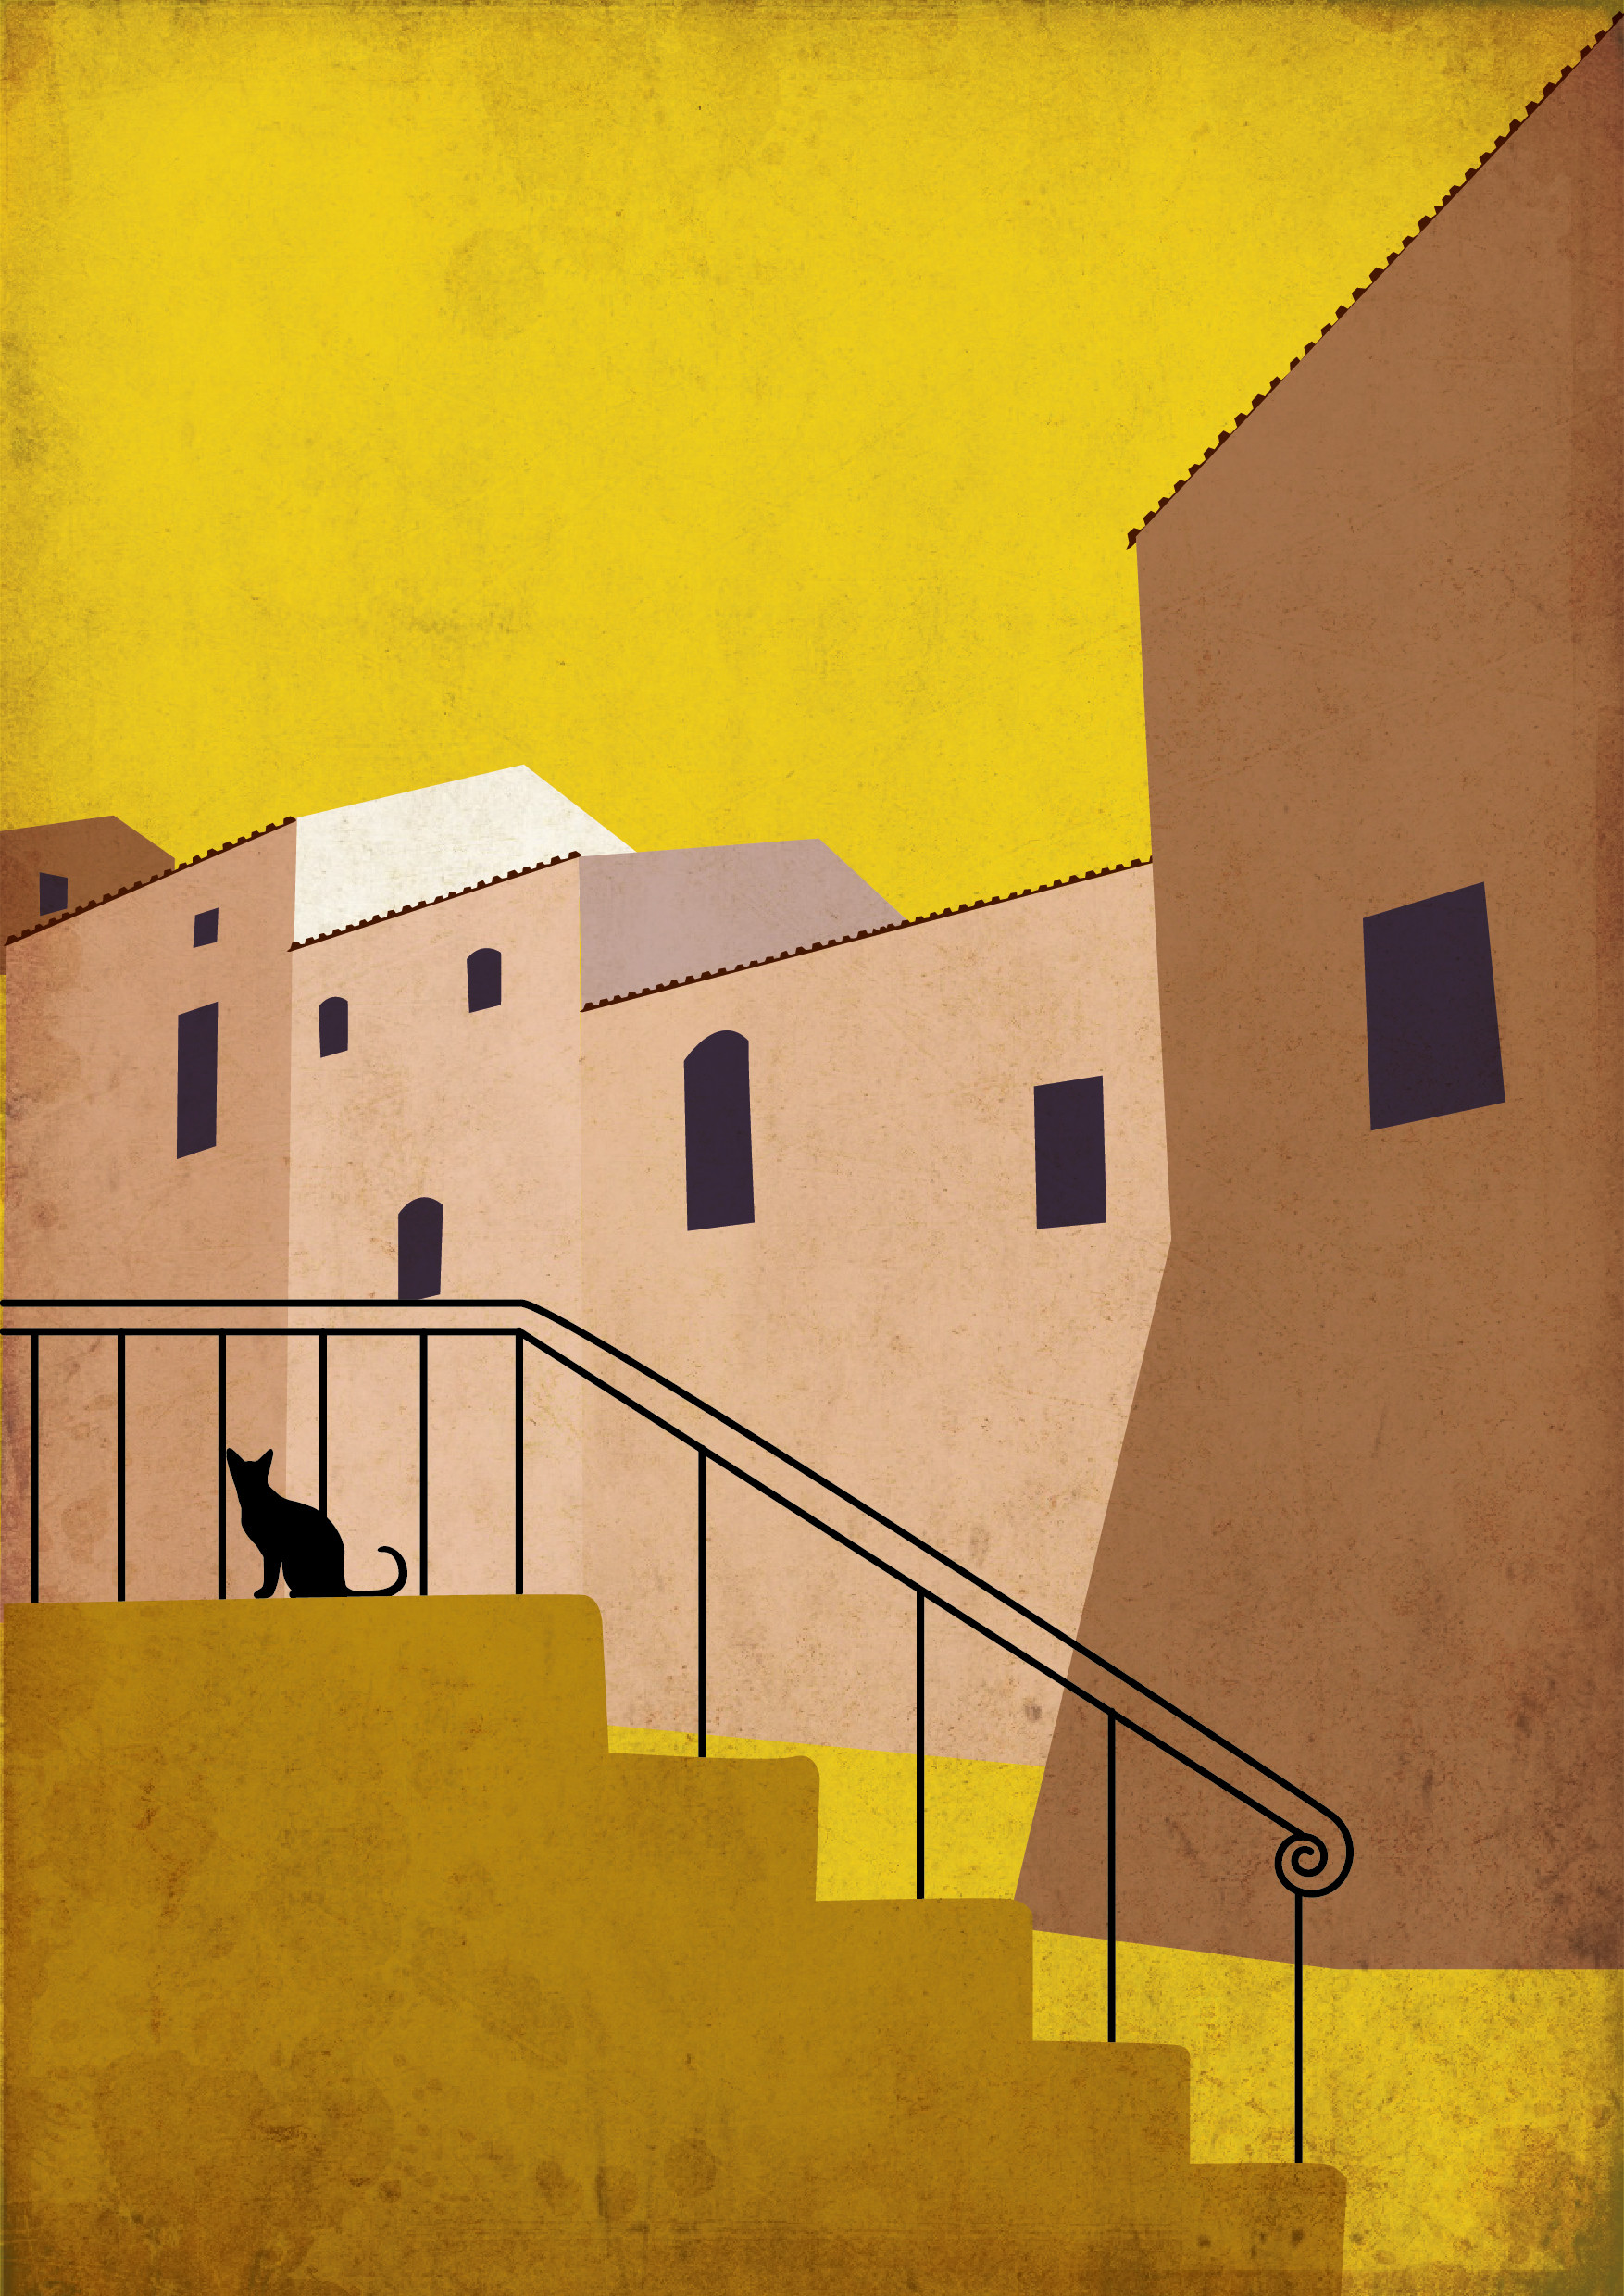 Rajesh sawant cat on stairs2 01